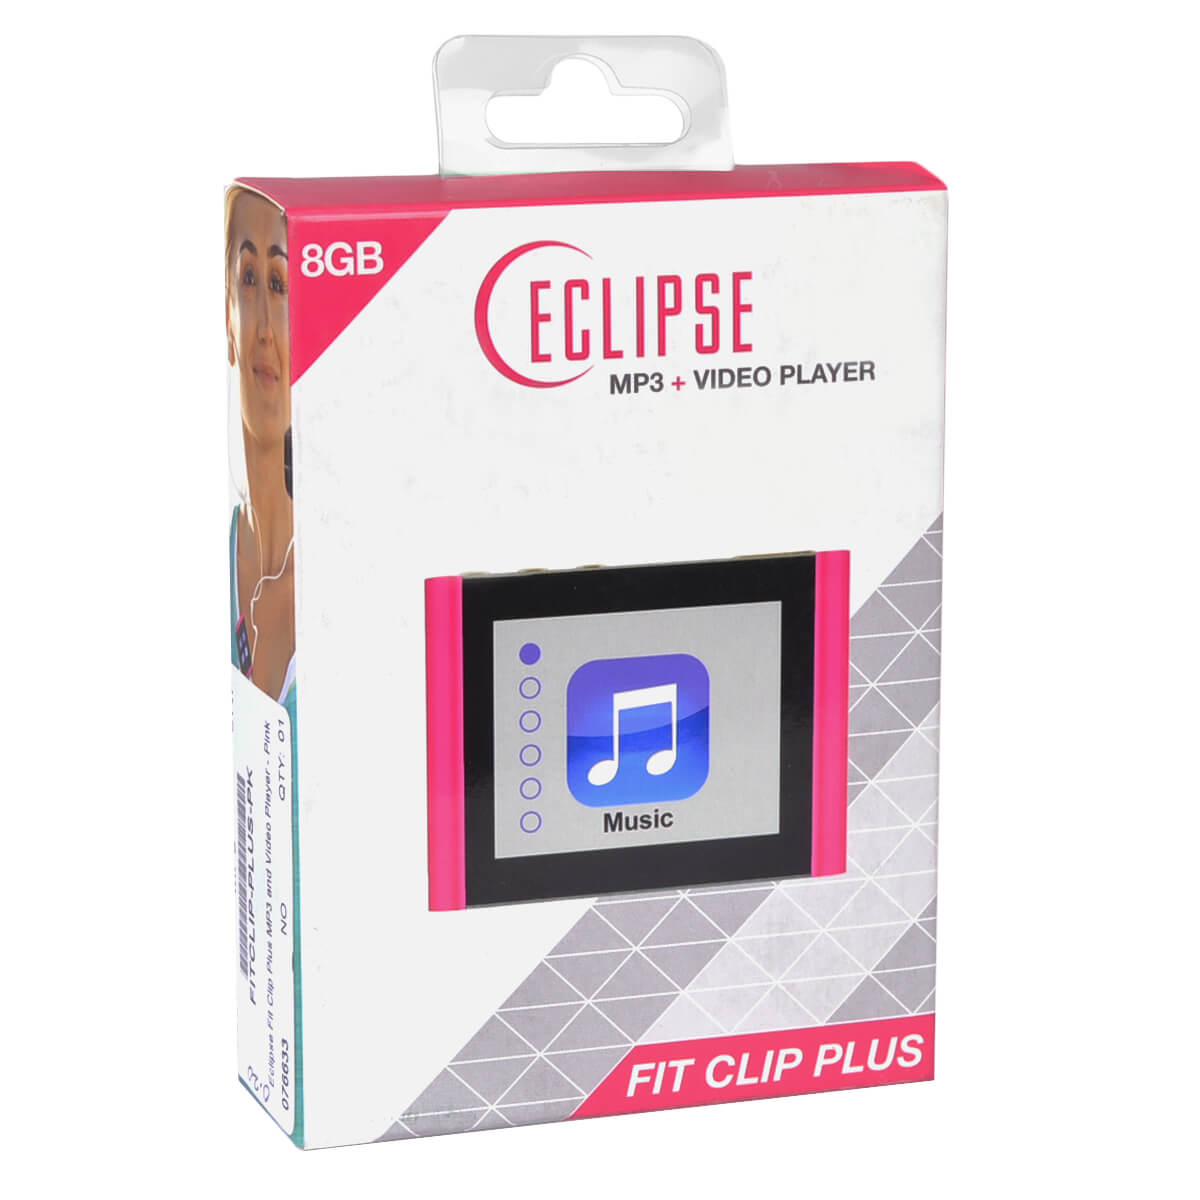 Eclipse-Fit-Clip-Plus-8GB-1-8-034-LCD-MP3-Digital-Music-Video-Player-amp-Pedometer thumbnail 10